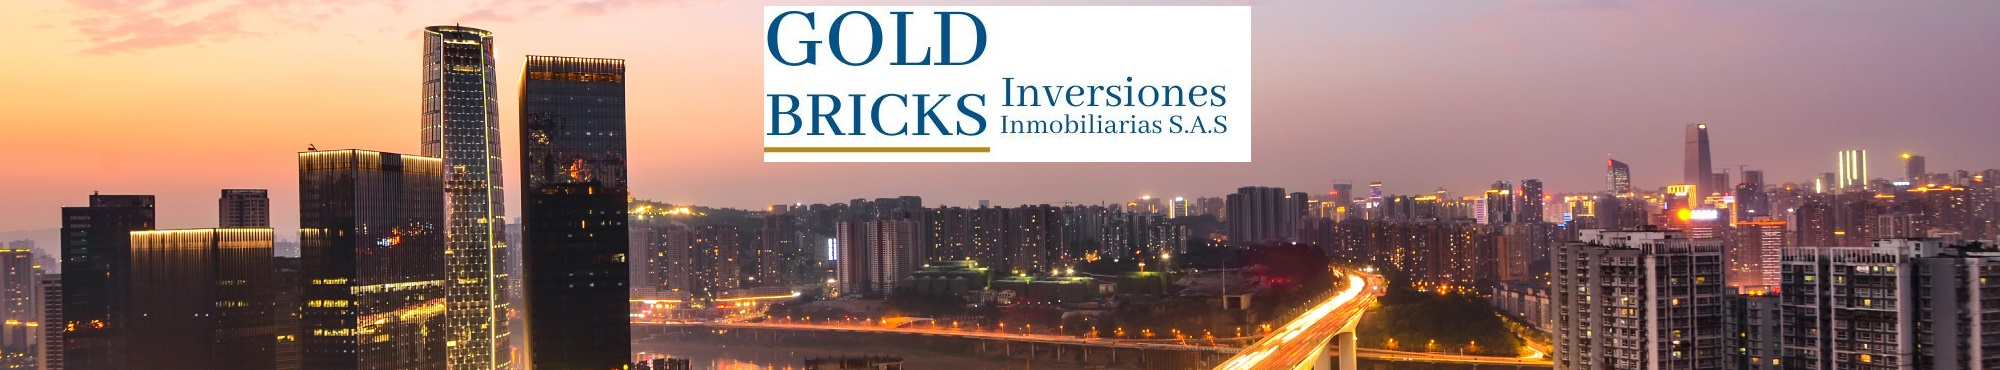 Micrositio de GOLD BRICKS Inversiones